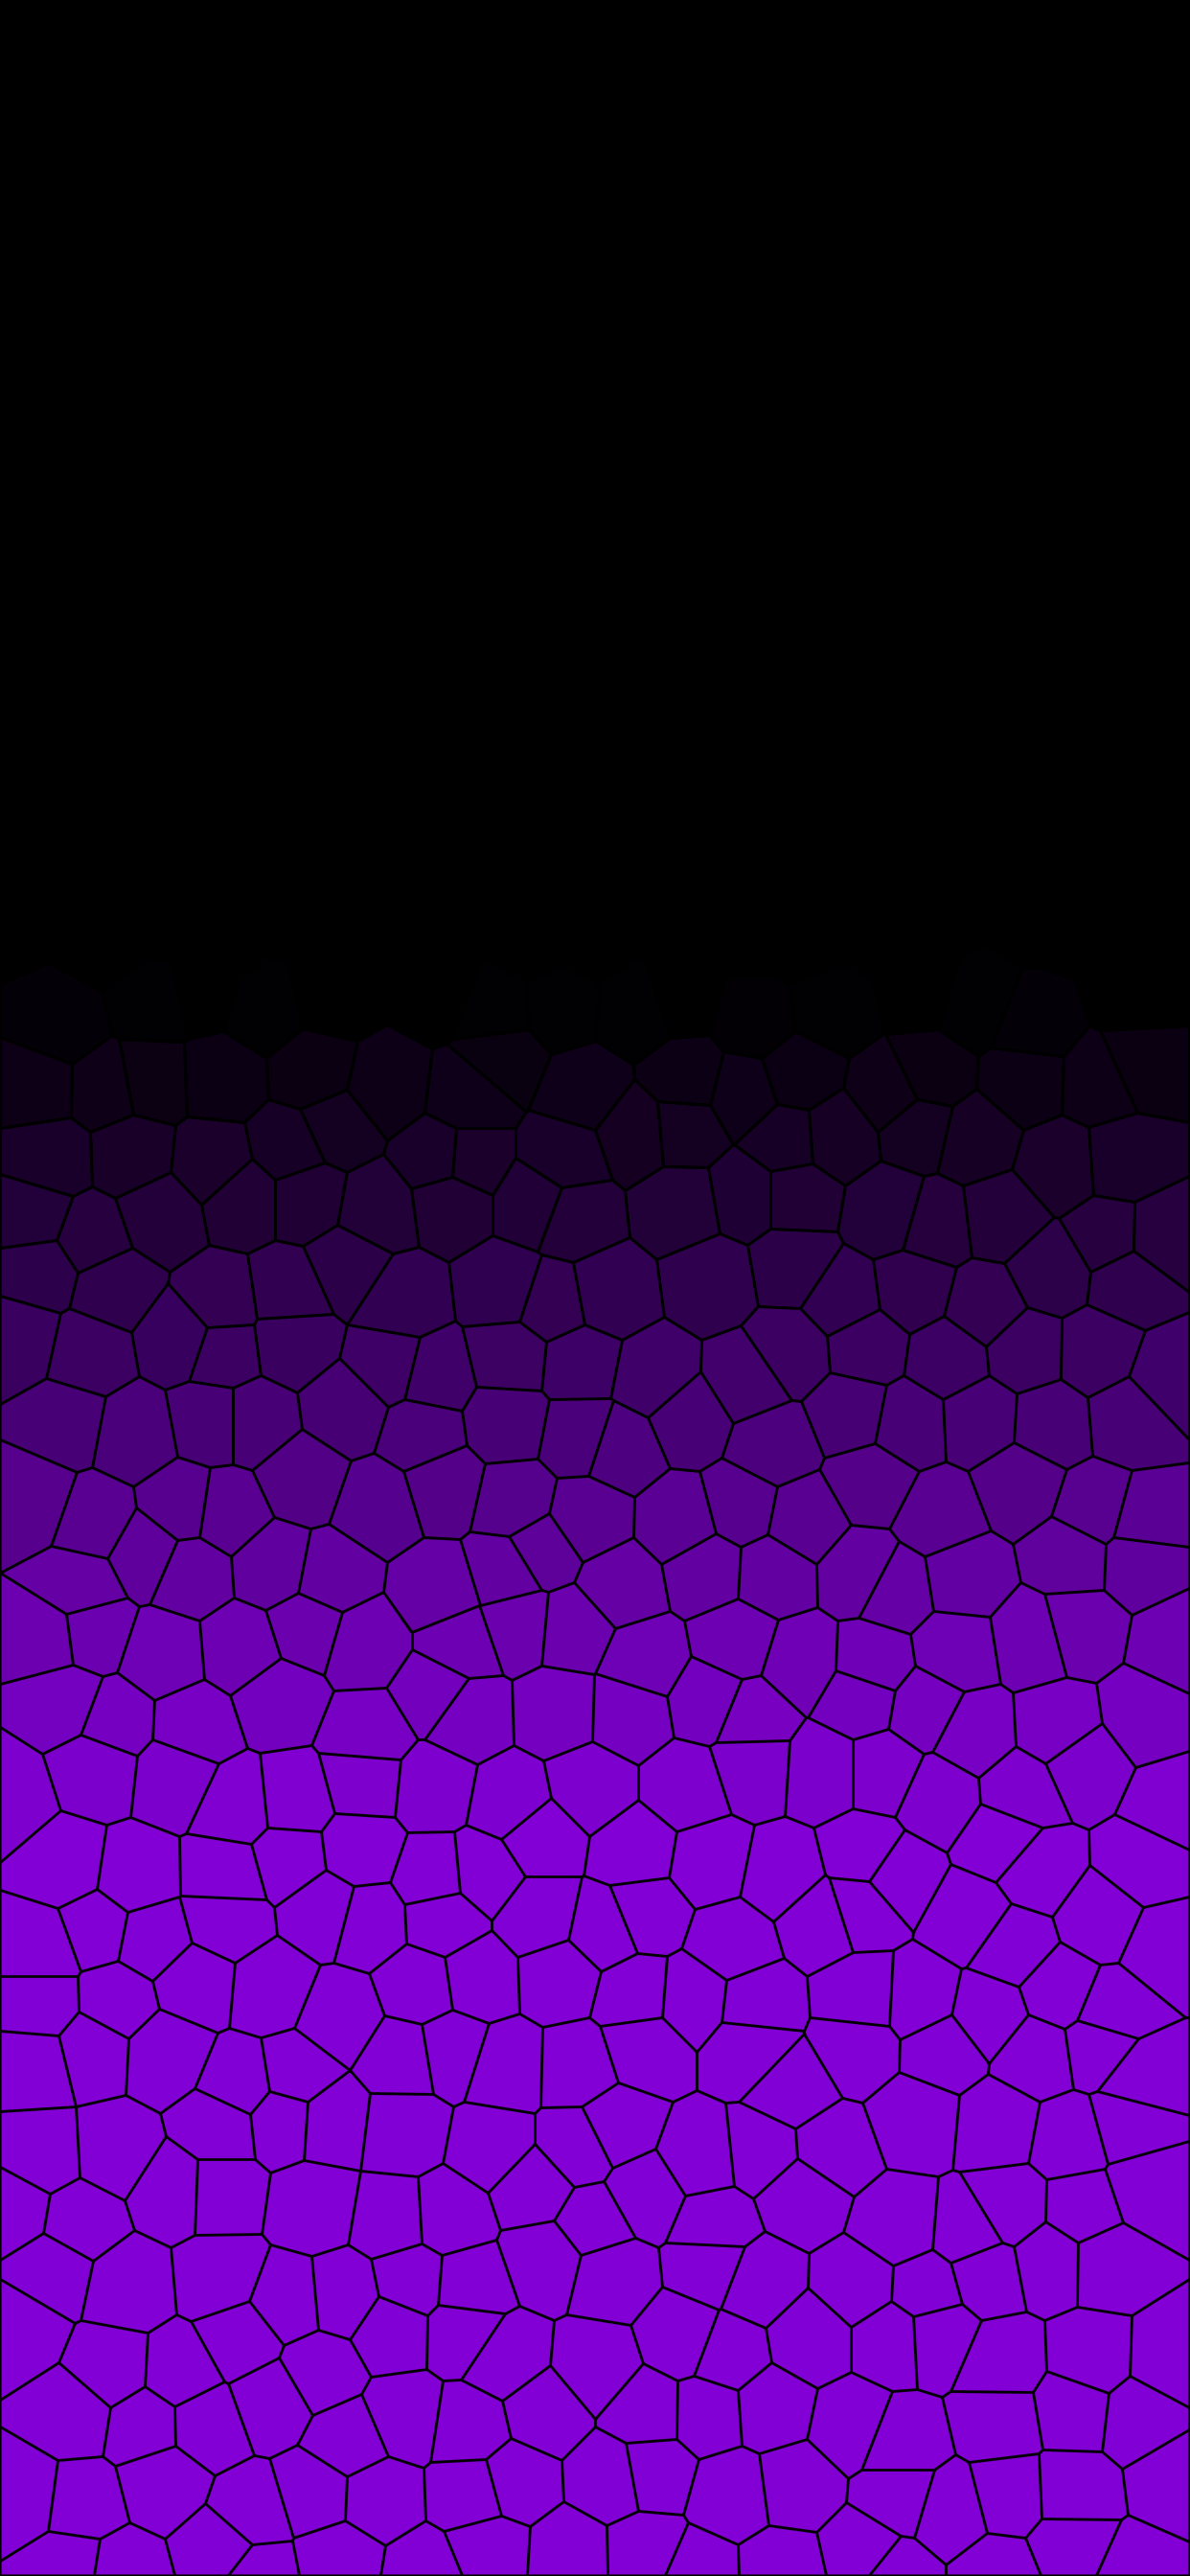 Vidrio purple iphone wallpaper mtmjoseph